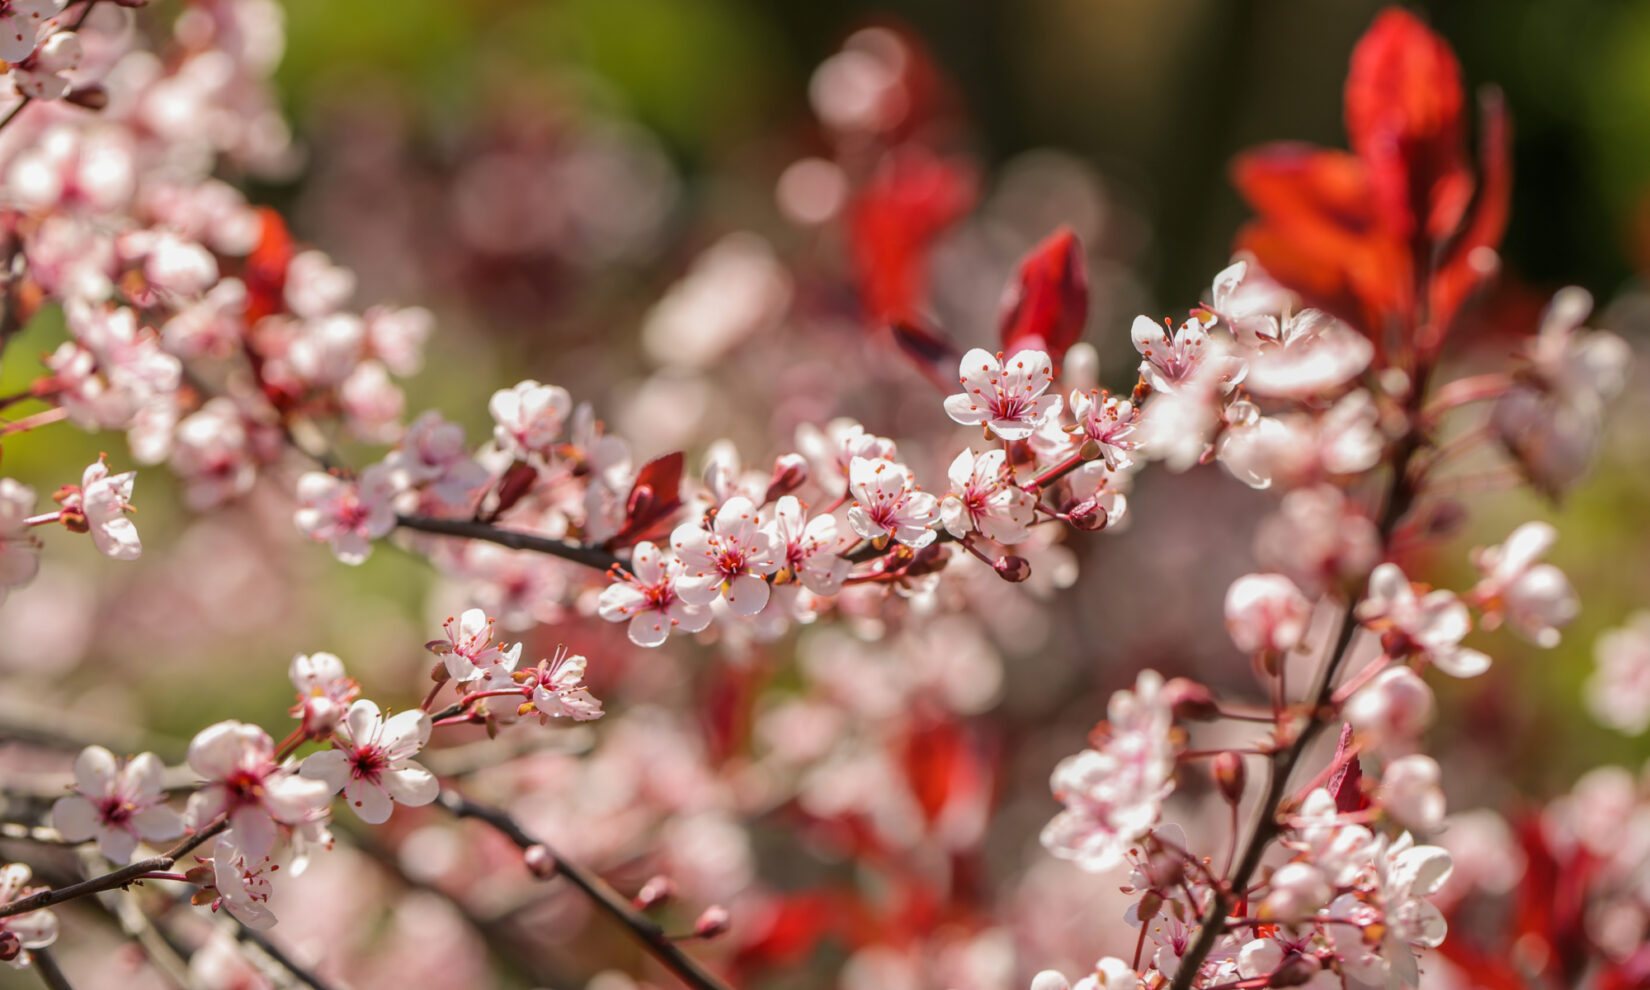 Spring blooms of pink and red studding branches in sharp relief to a blurred floral background